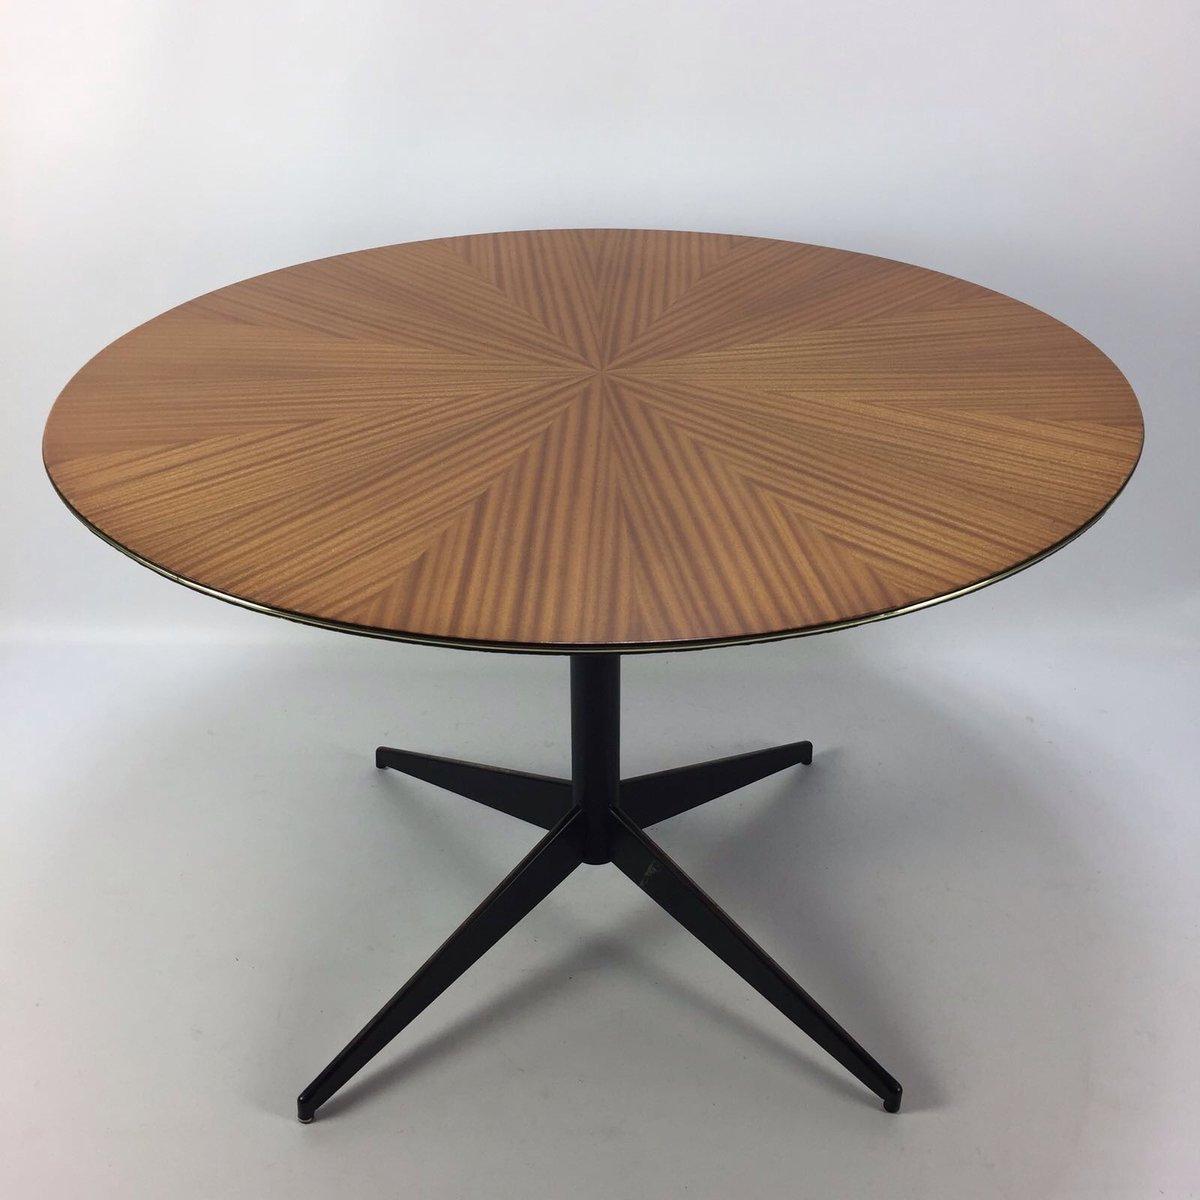 Circular Dining Table By Vittorio Nobili For Fratelli Tagliabue, 1950s